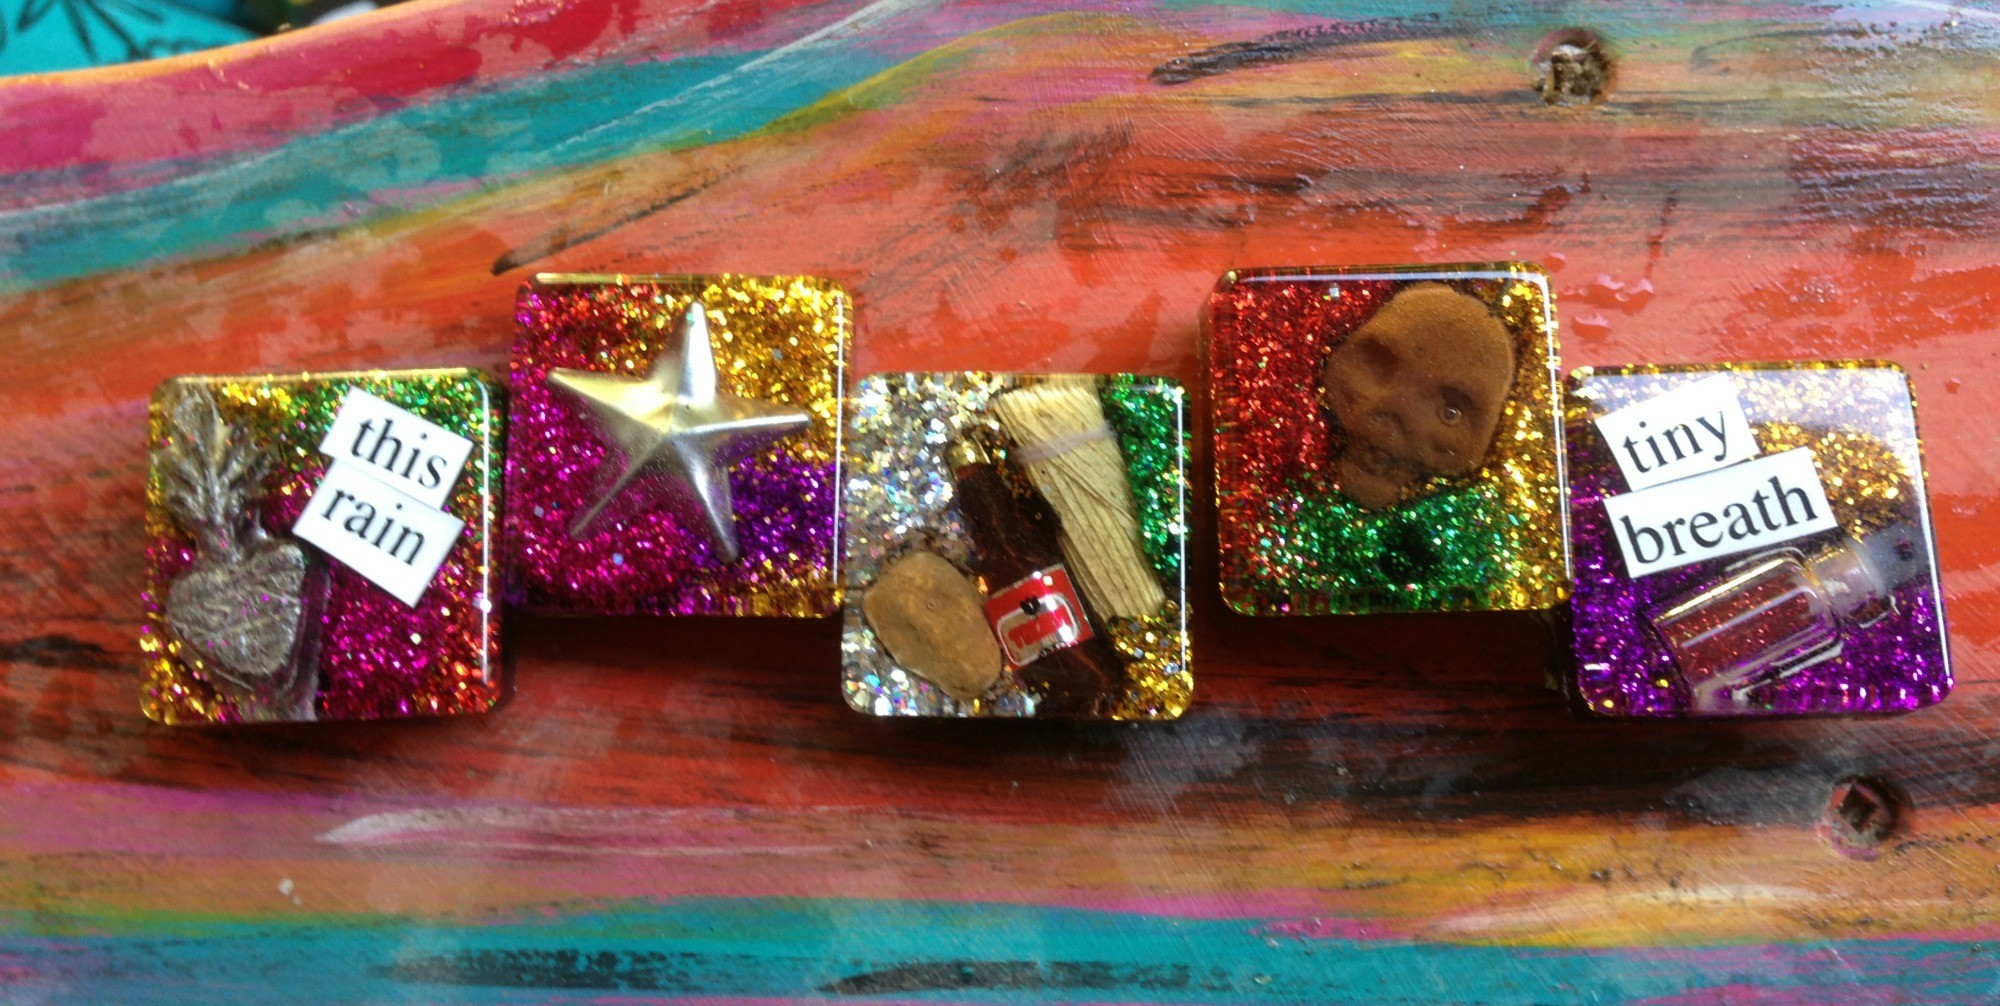 Layered Resin Magnets The Crafty Chica Crafts Latinx Art Creative Motivation